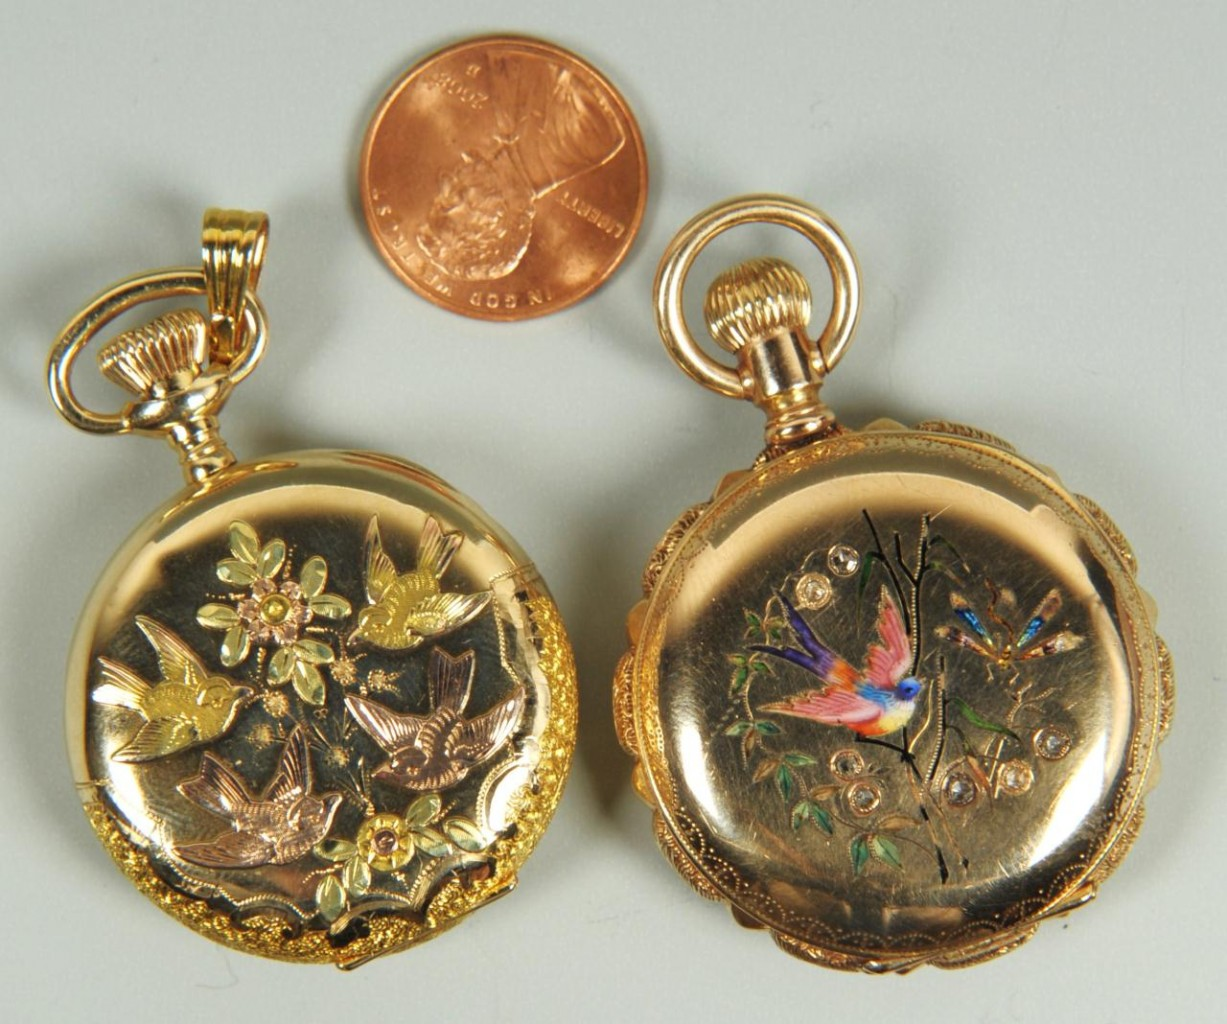 Lot 158: Two 14K Waltham Hunting Case Watches w/ Birds